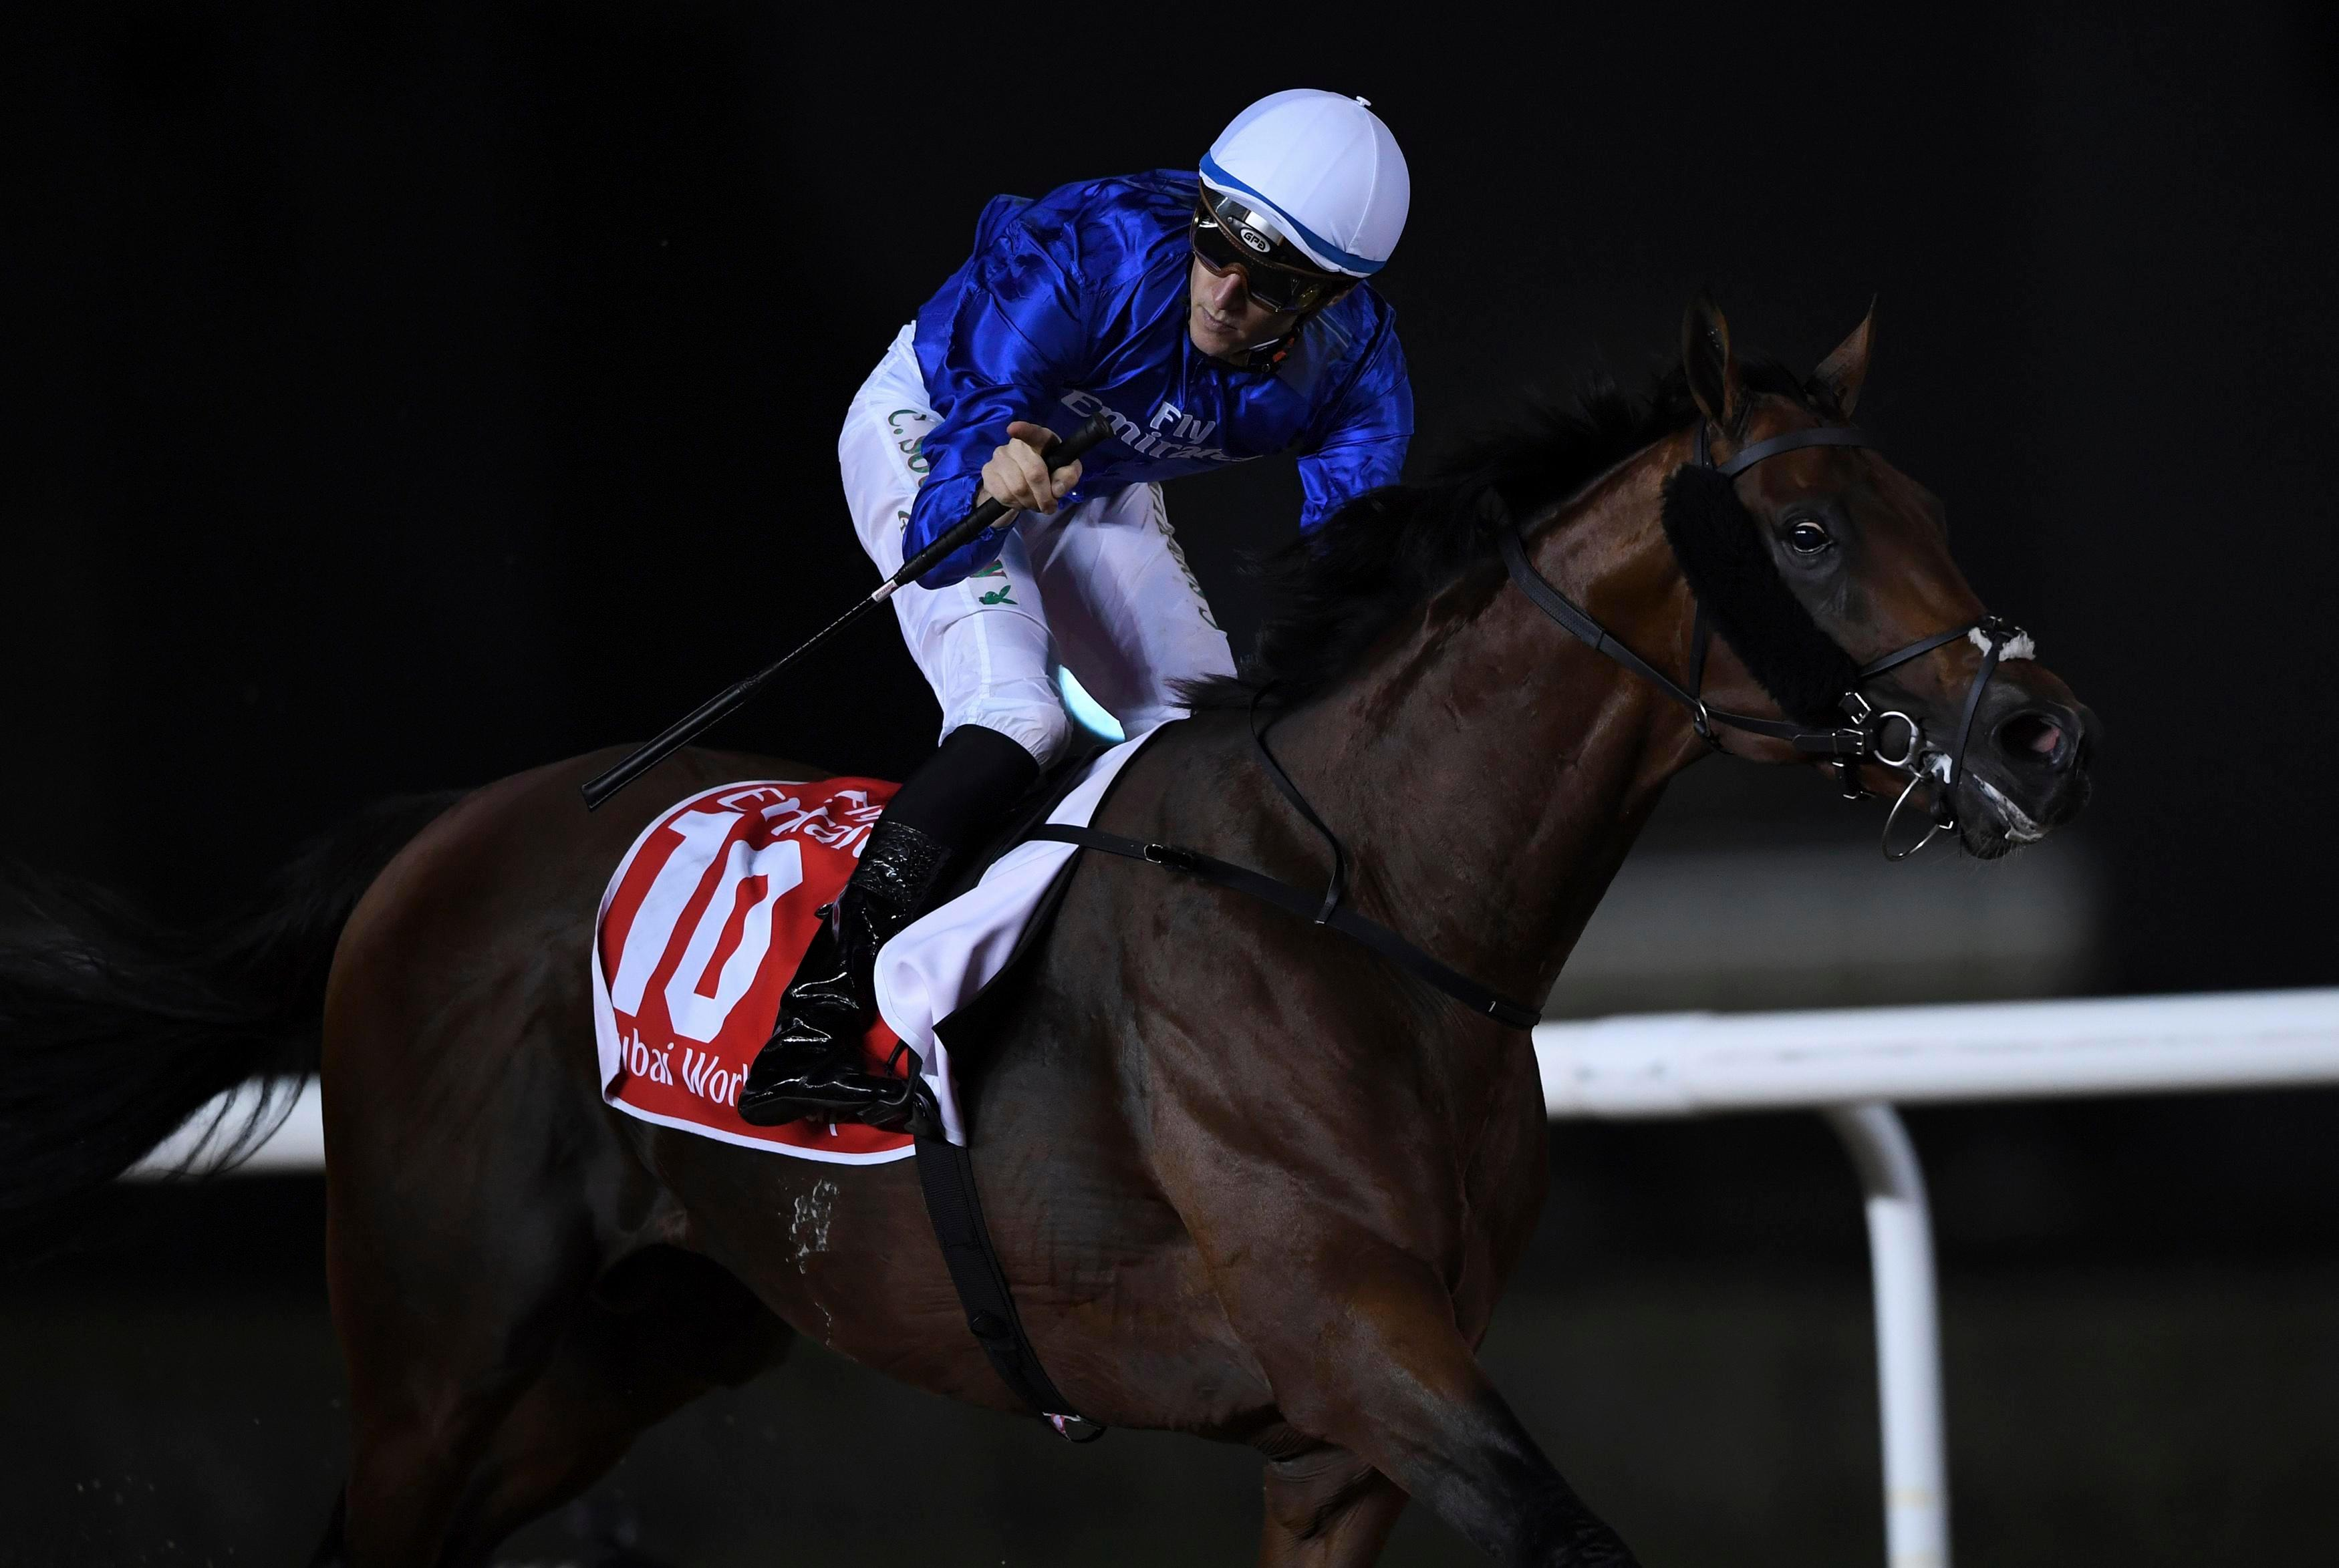 Dubai World Cup 2019: Keep an eye on these British and Irish-trained horses running on Dubai World Cup night at Meydan